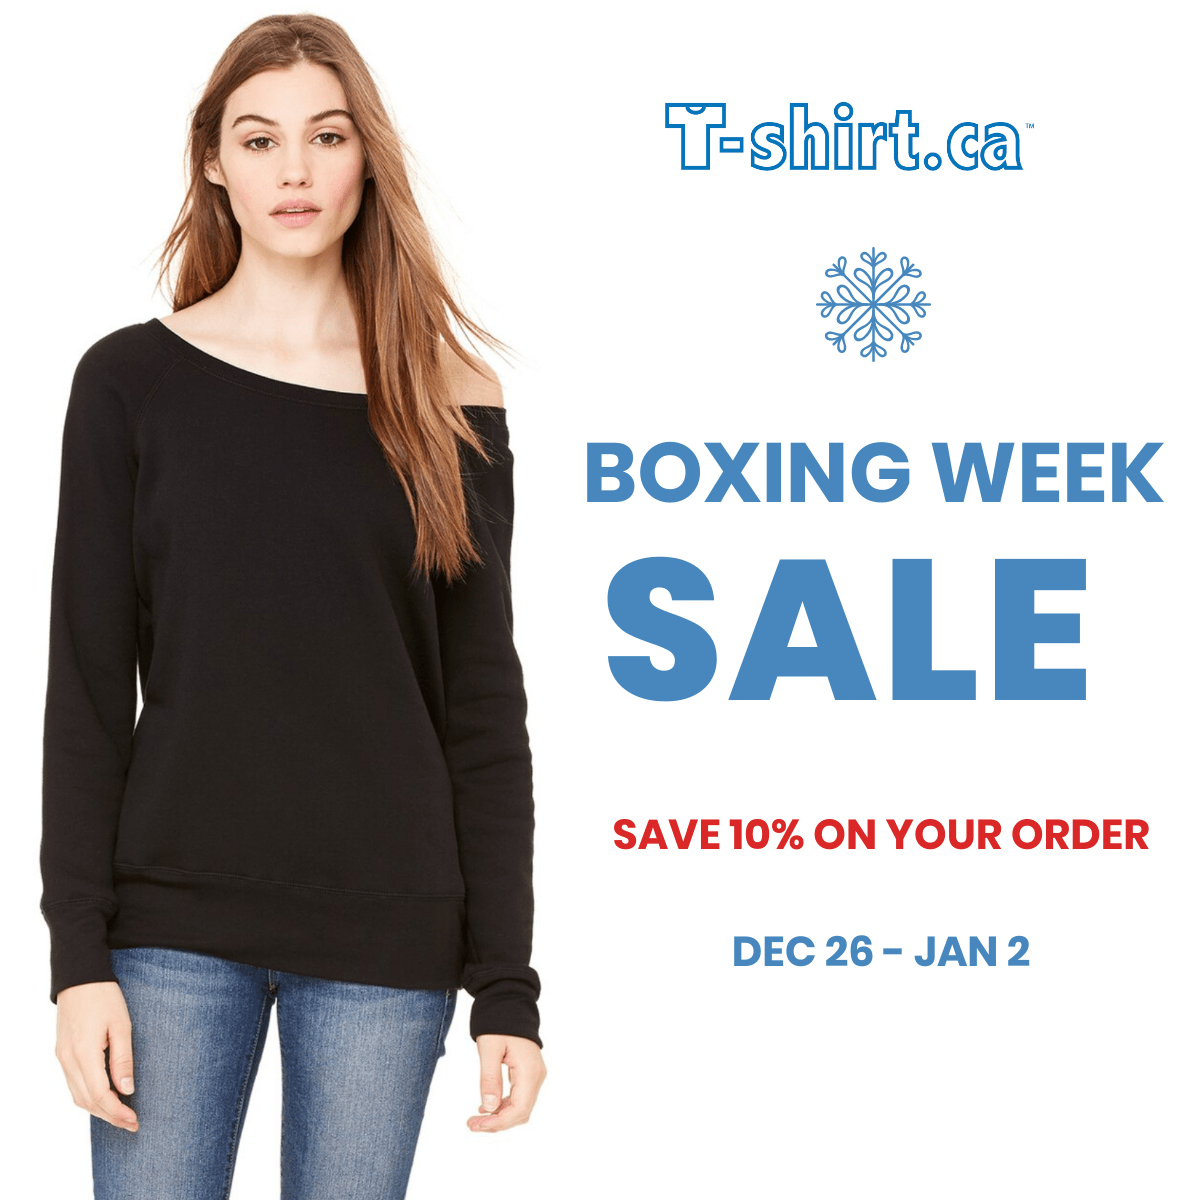 Get Ready For Our Boxing Week Sale!